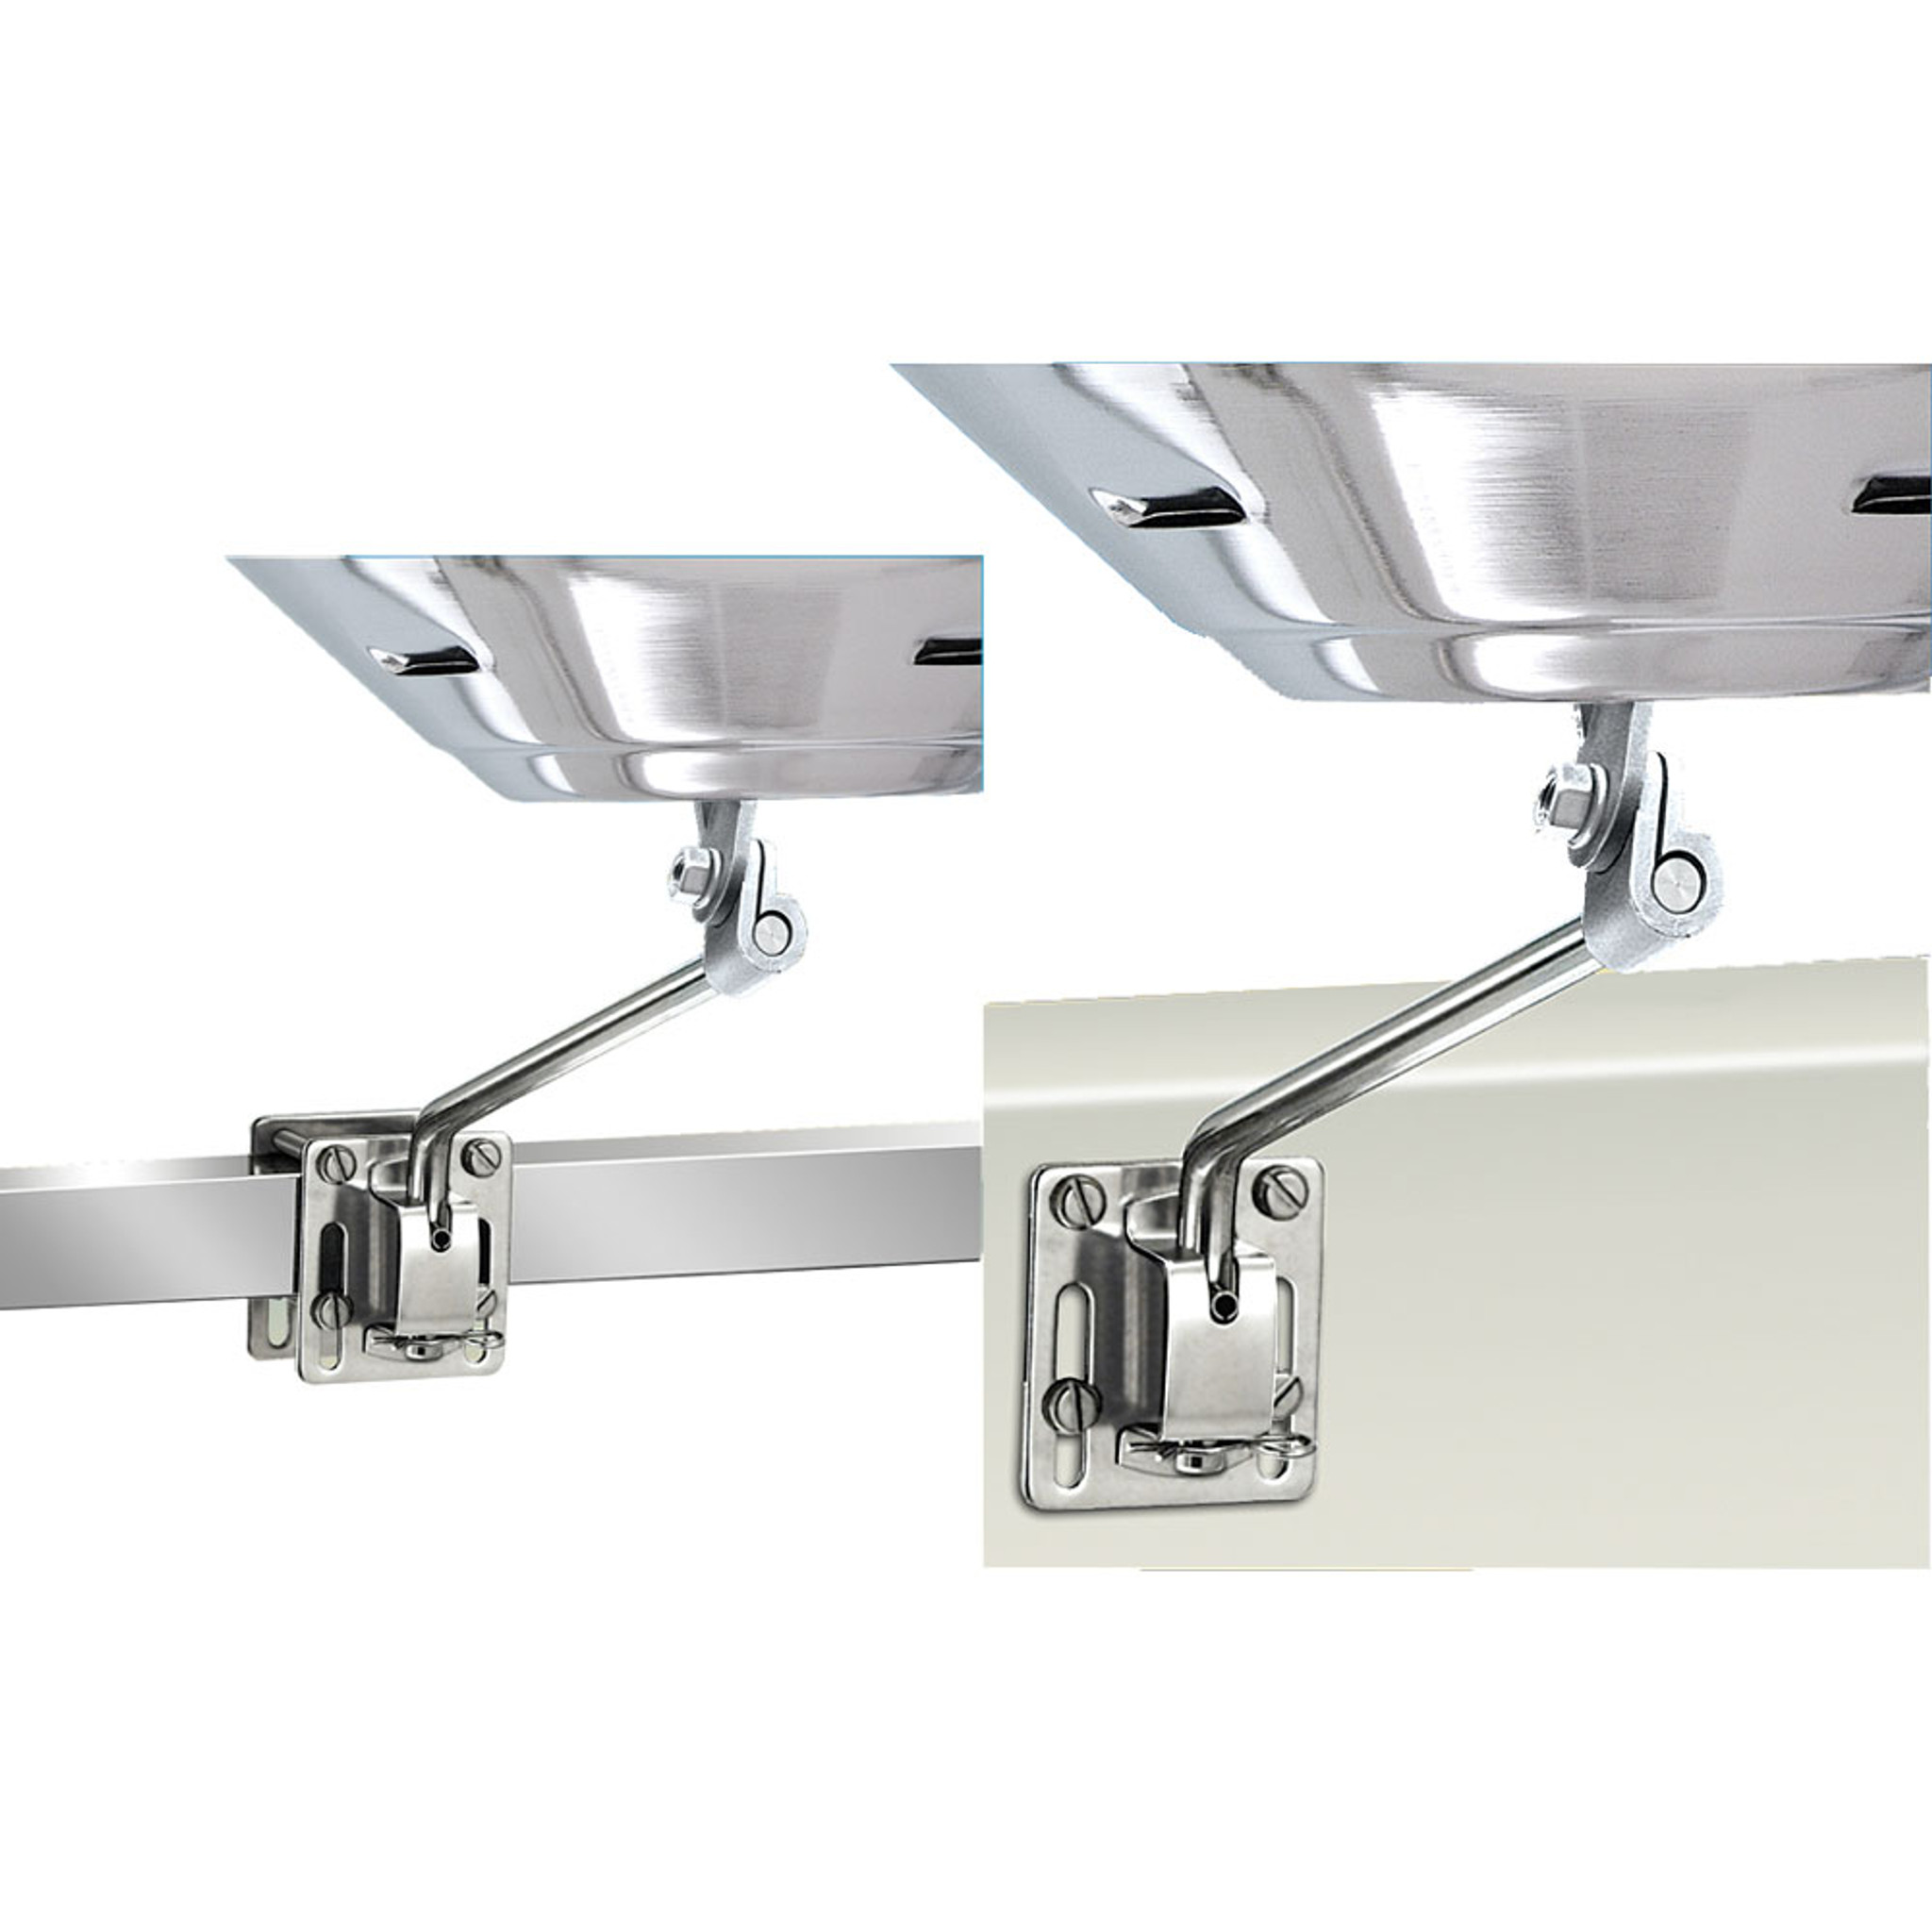 7//8 or 1 f//Kettle Series Grills Magma Round Rail Mount